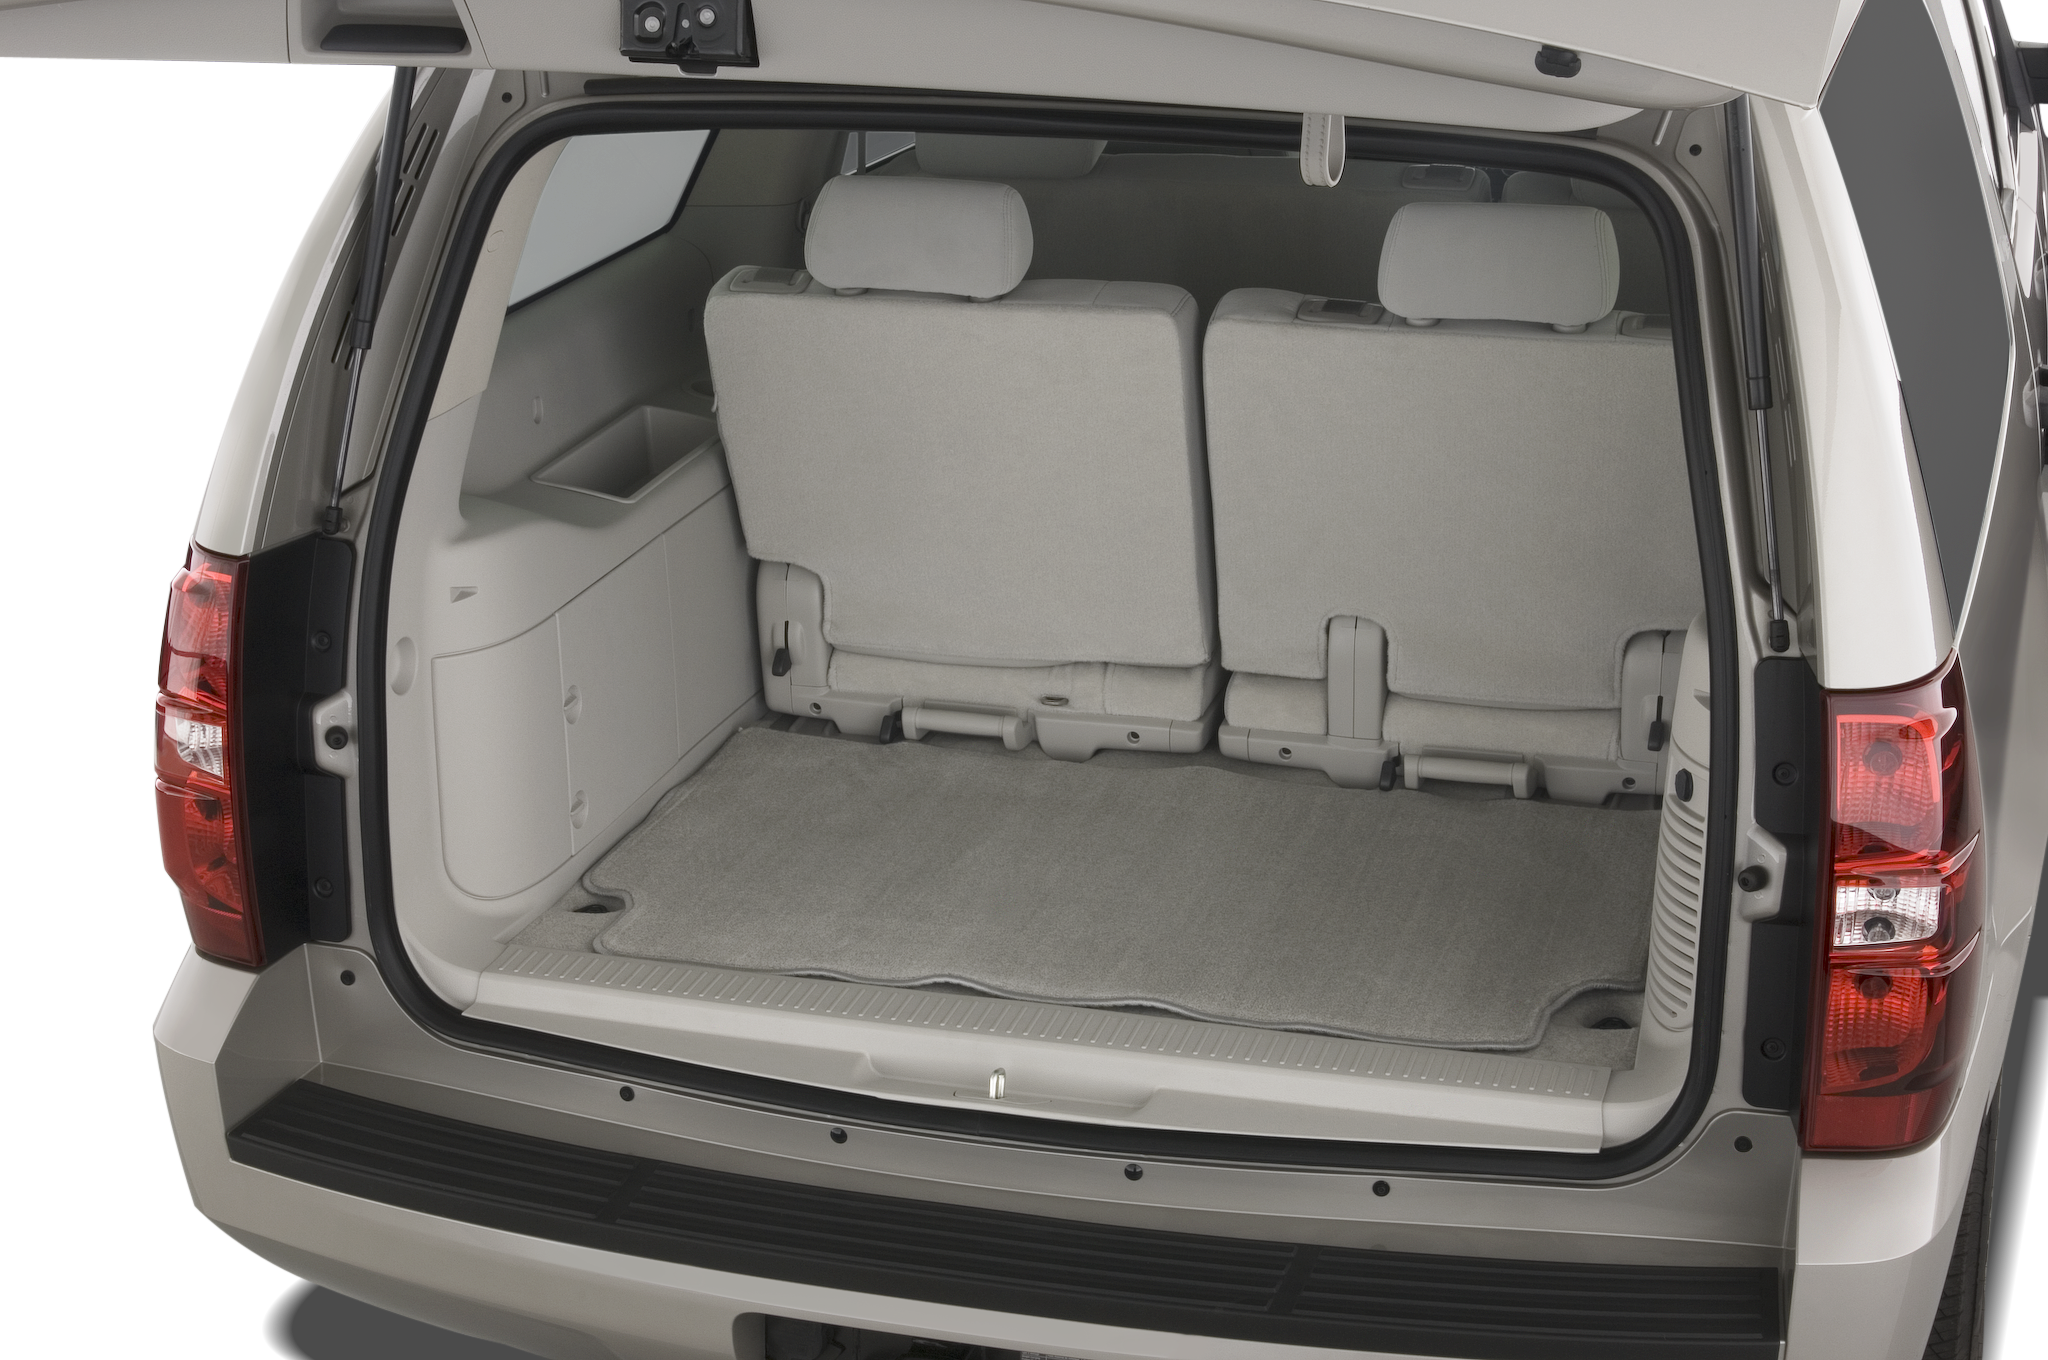 Chevrolet 39 s new marketing mantra chevy runs deep - Small suv cargo space comparison collection ...